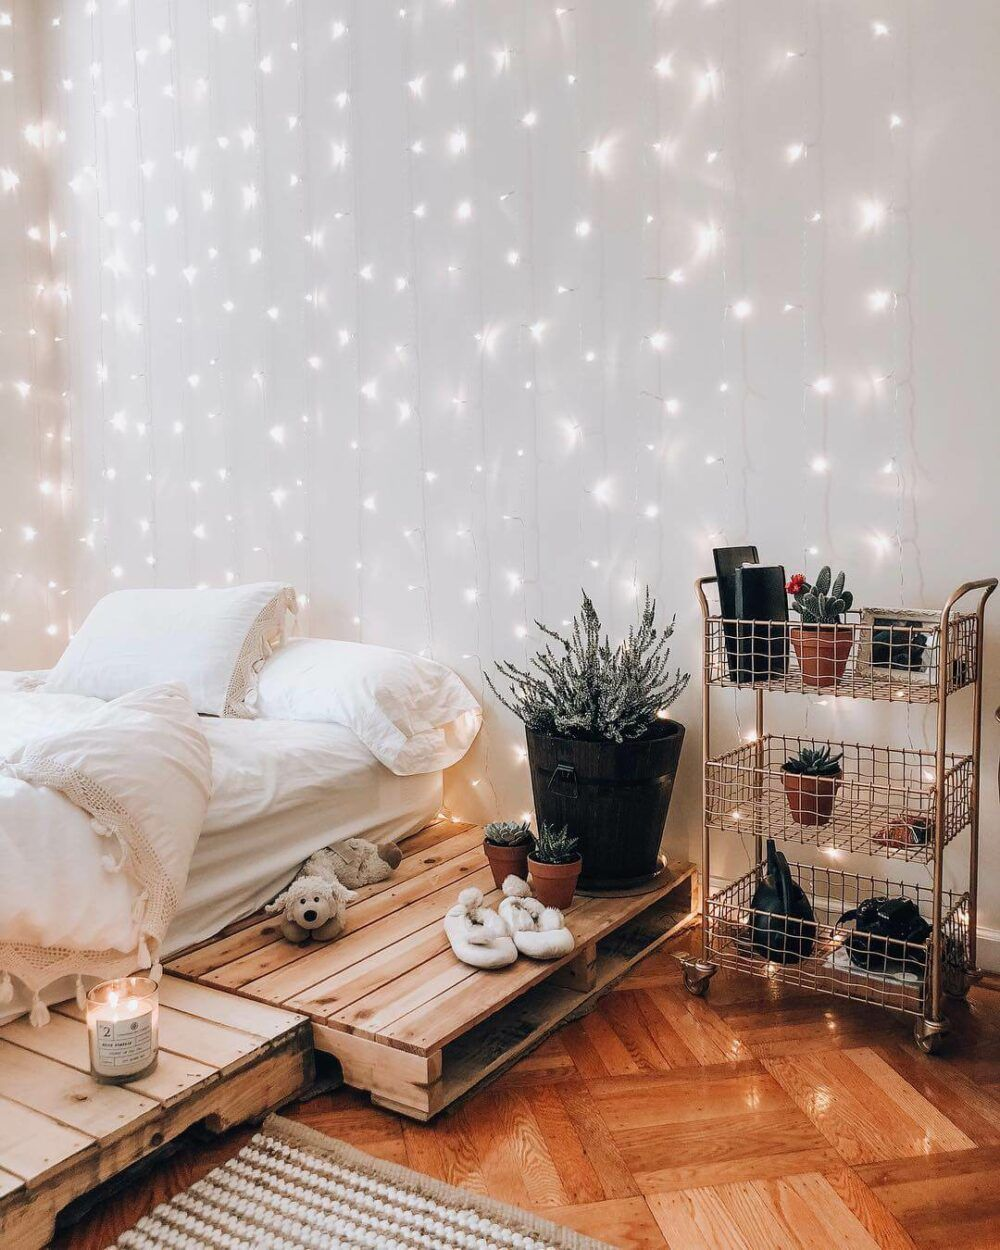 20 Creative Bedroom Wall Decor Ideas For A Comfy And Cozy Bedroom